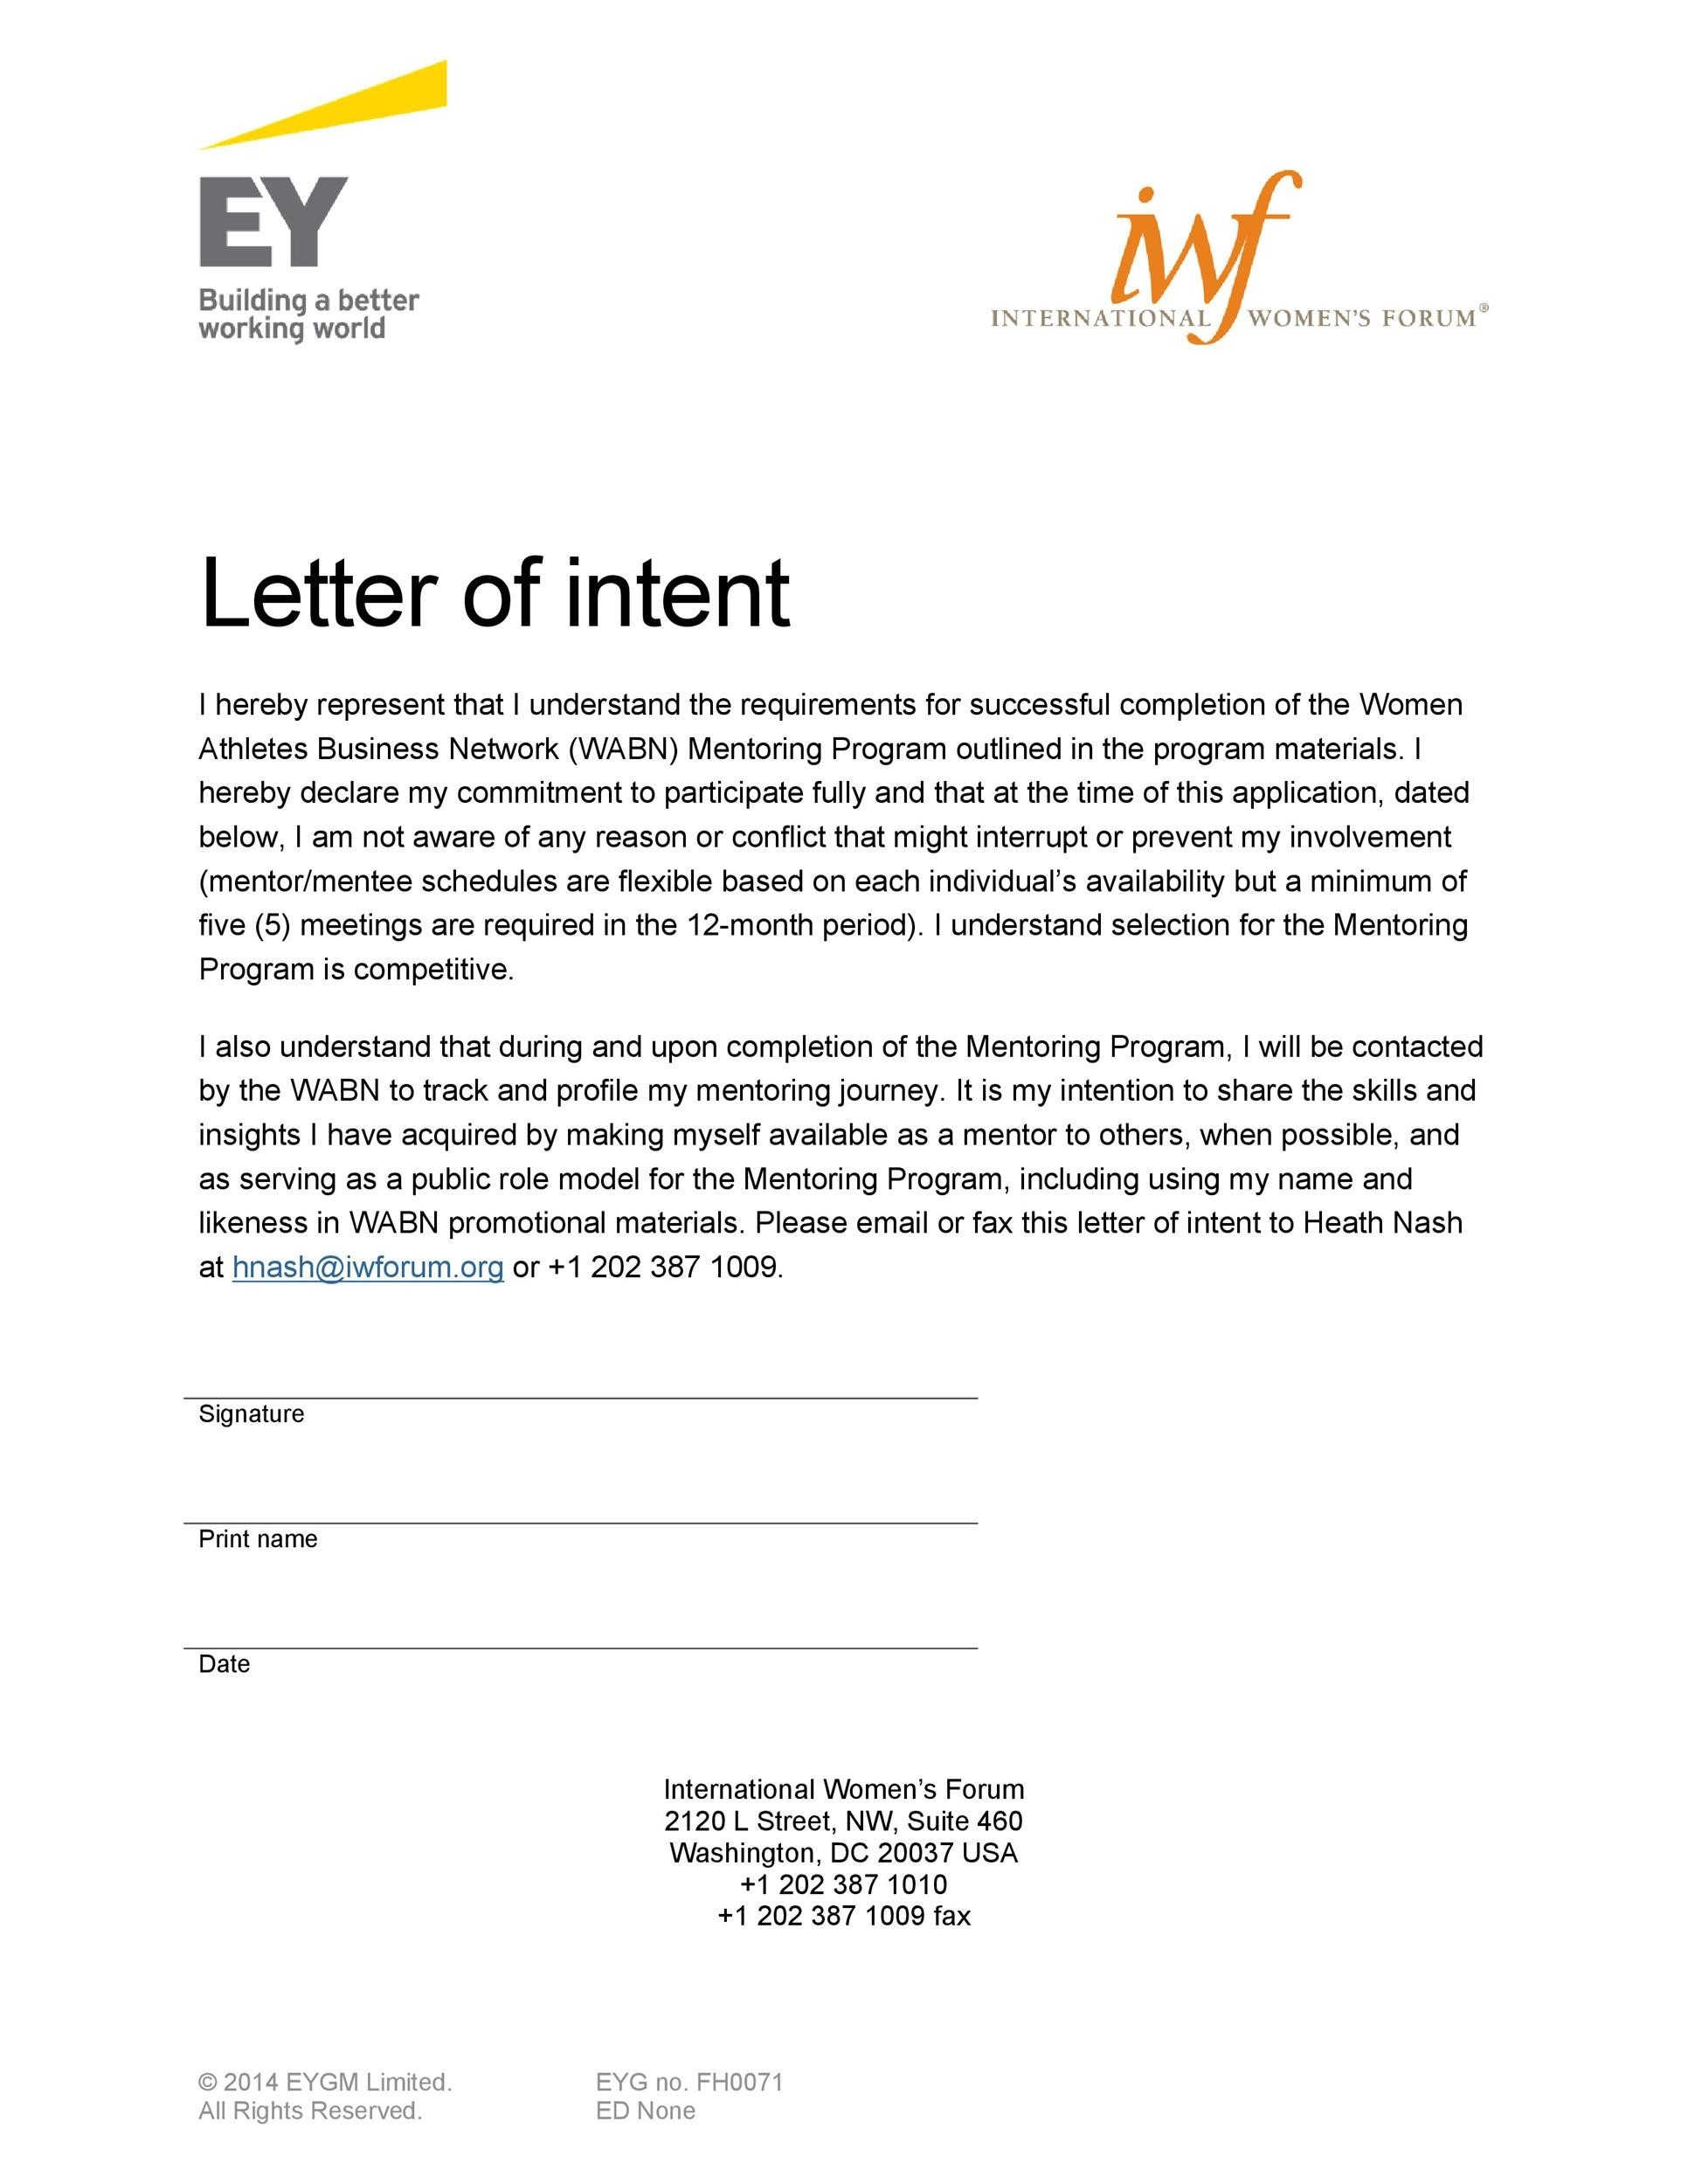 letter of intent format 40 letter of intent templates amp samples for school 10322